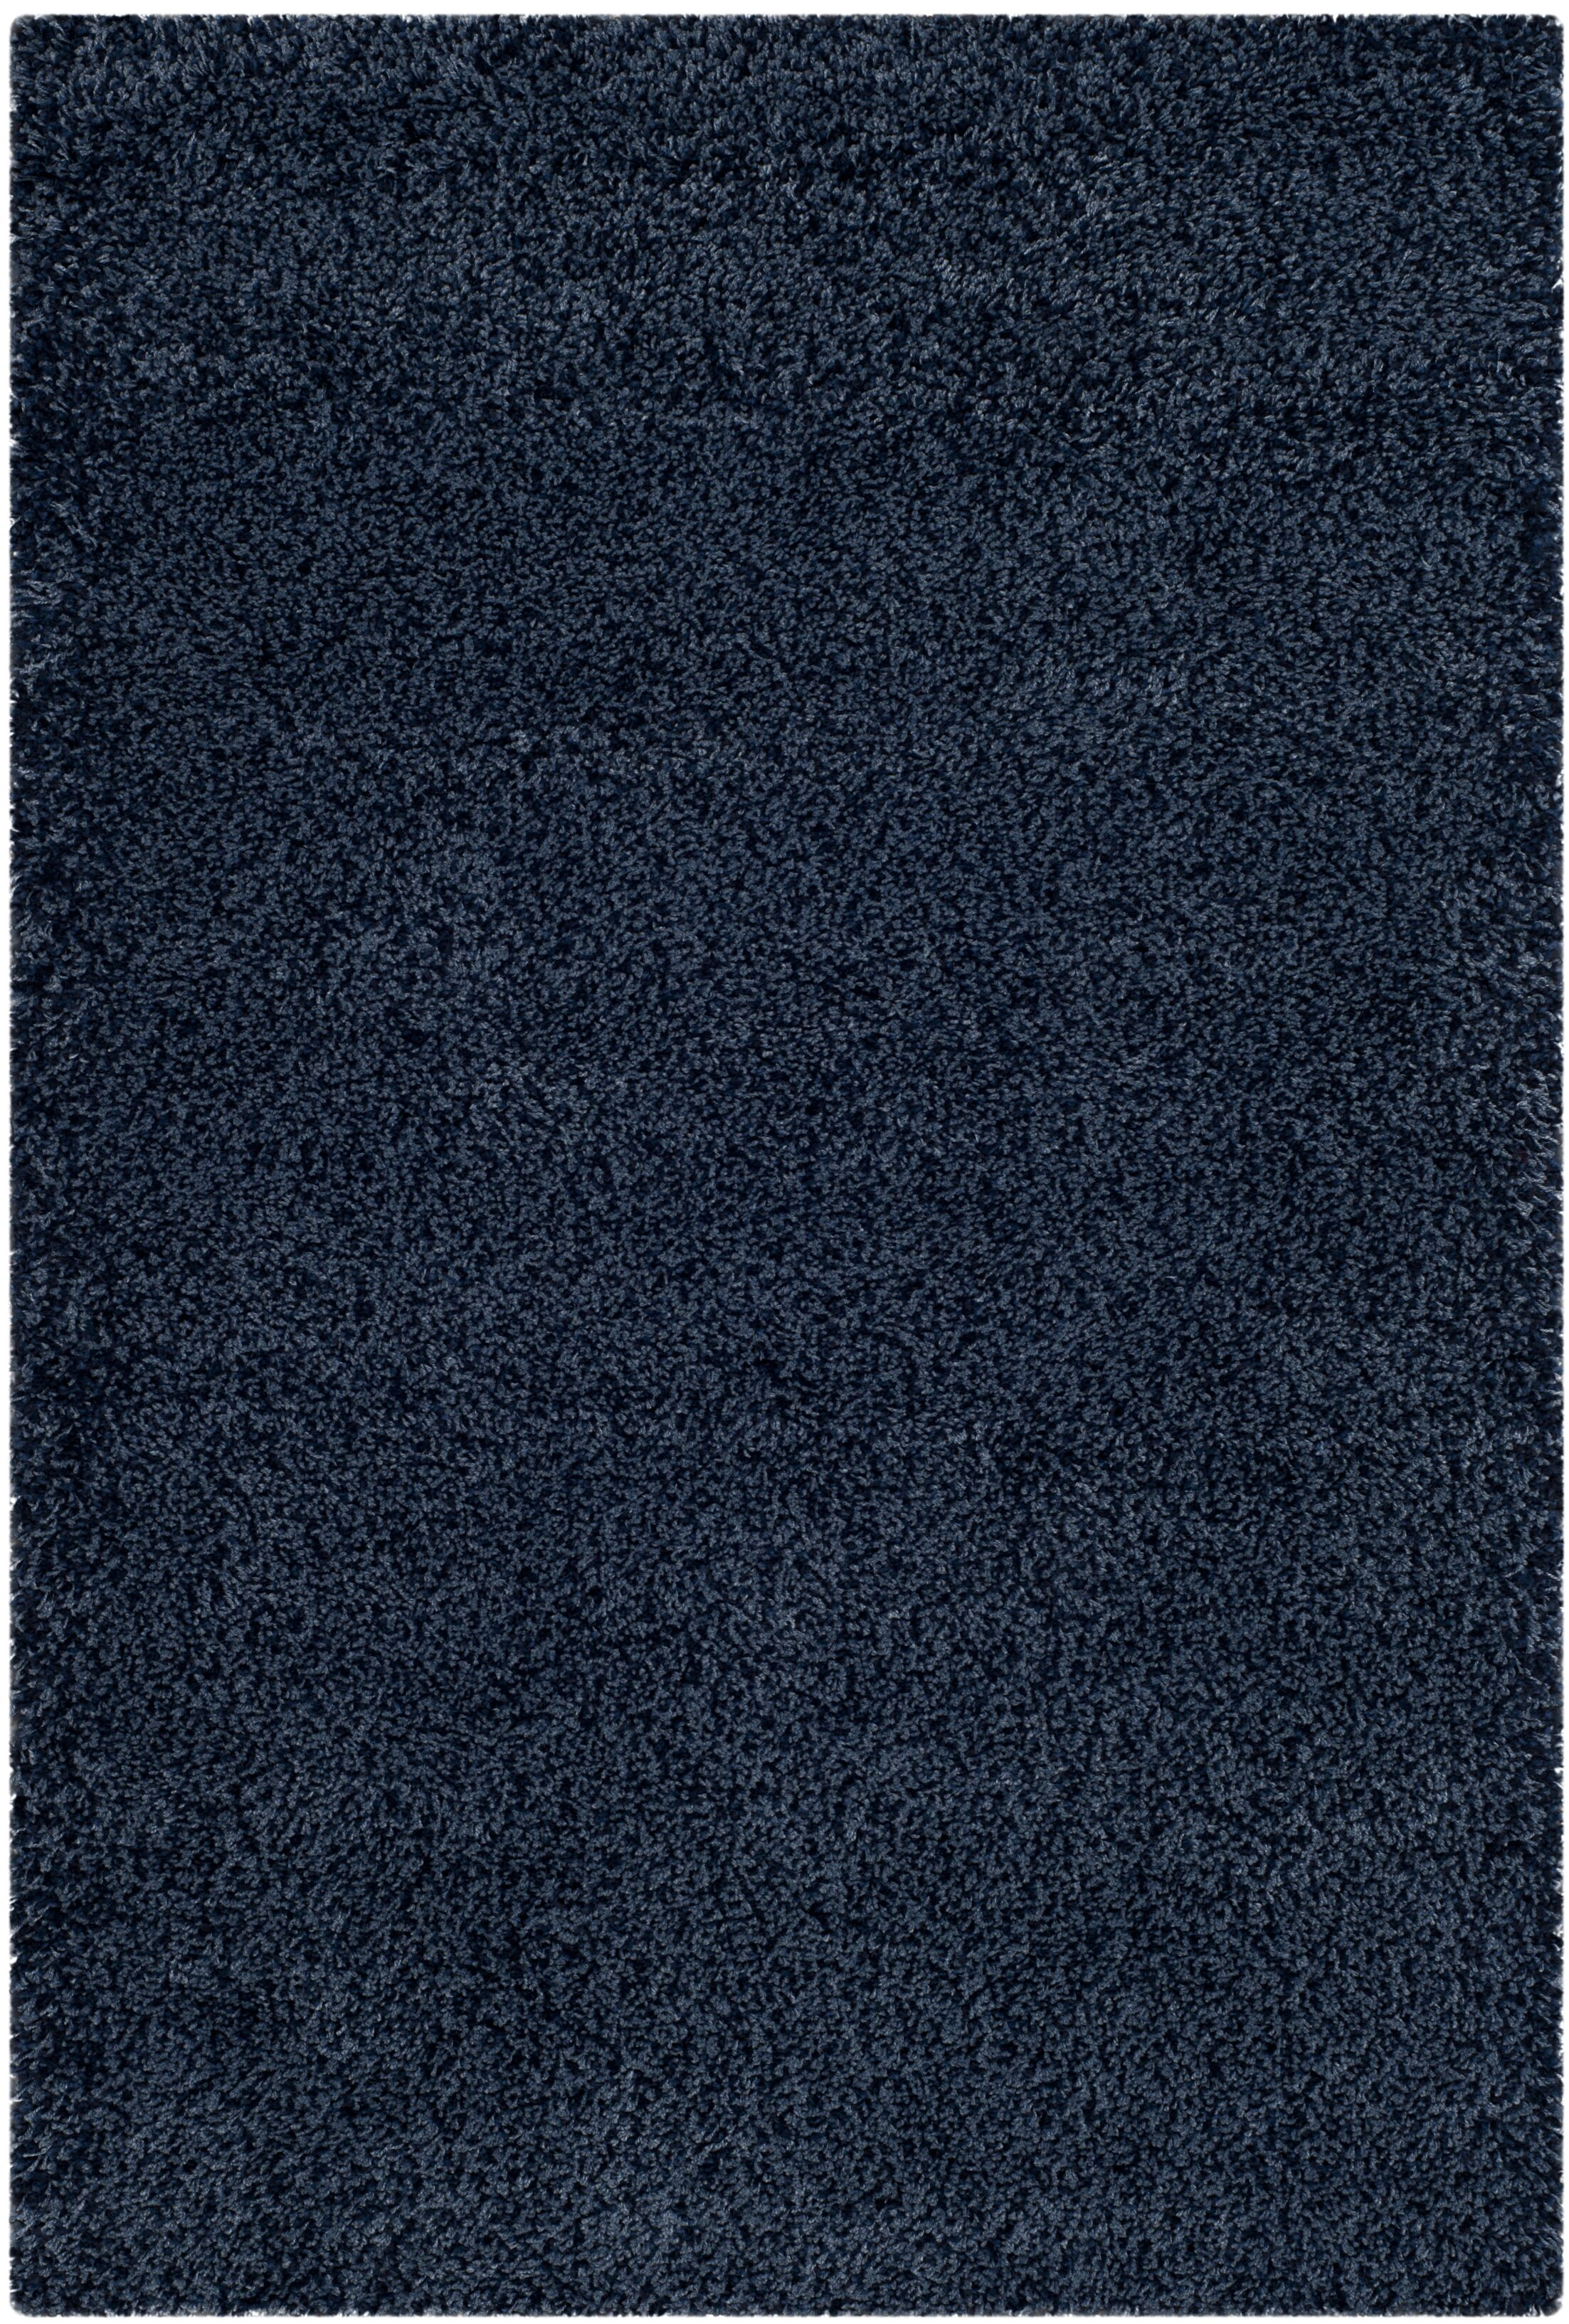 Brickner Blue Area Rug Rug Size: Rectangle 4' x 6 '